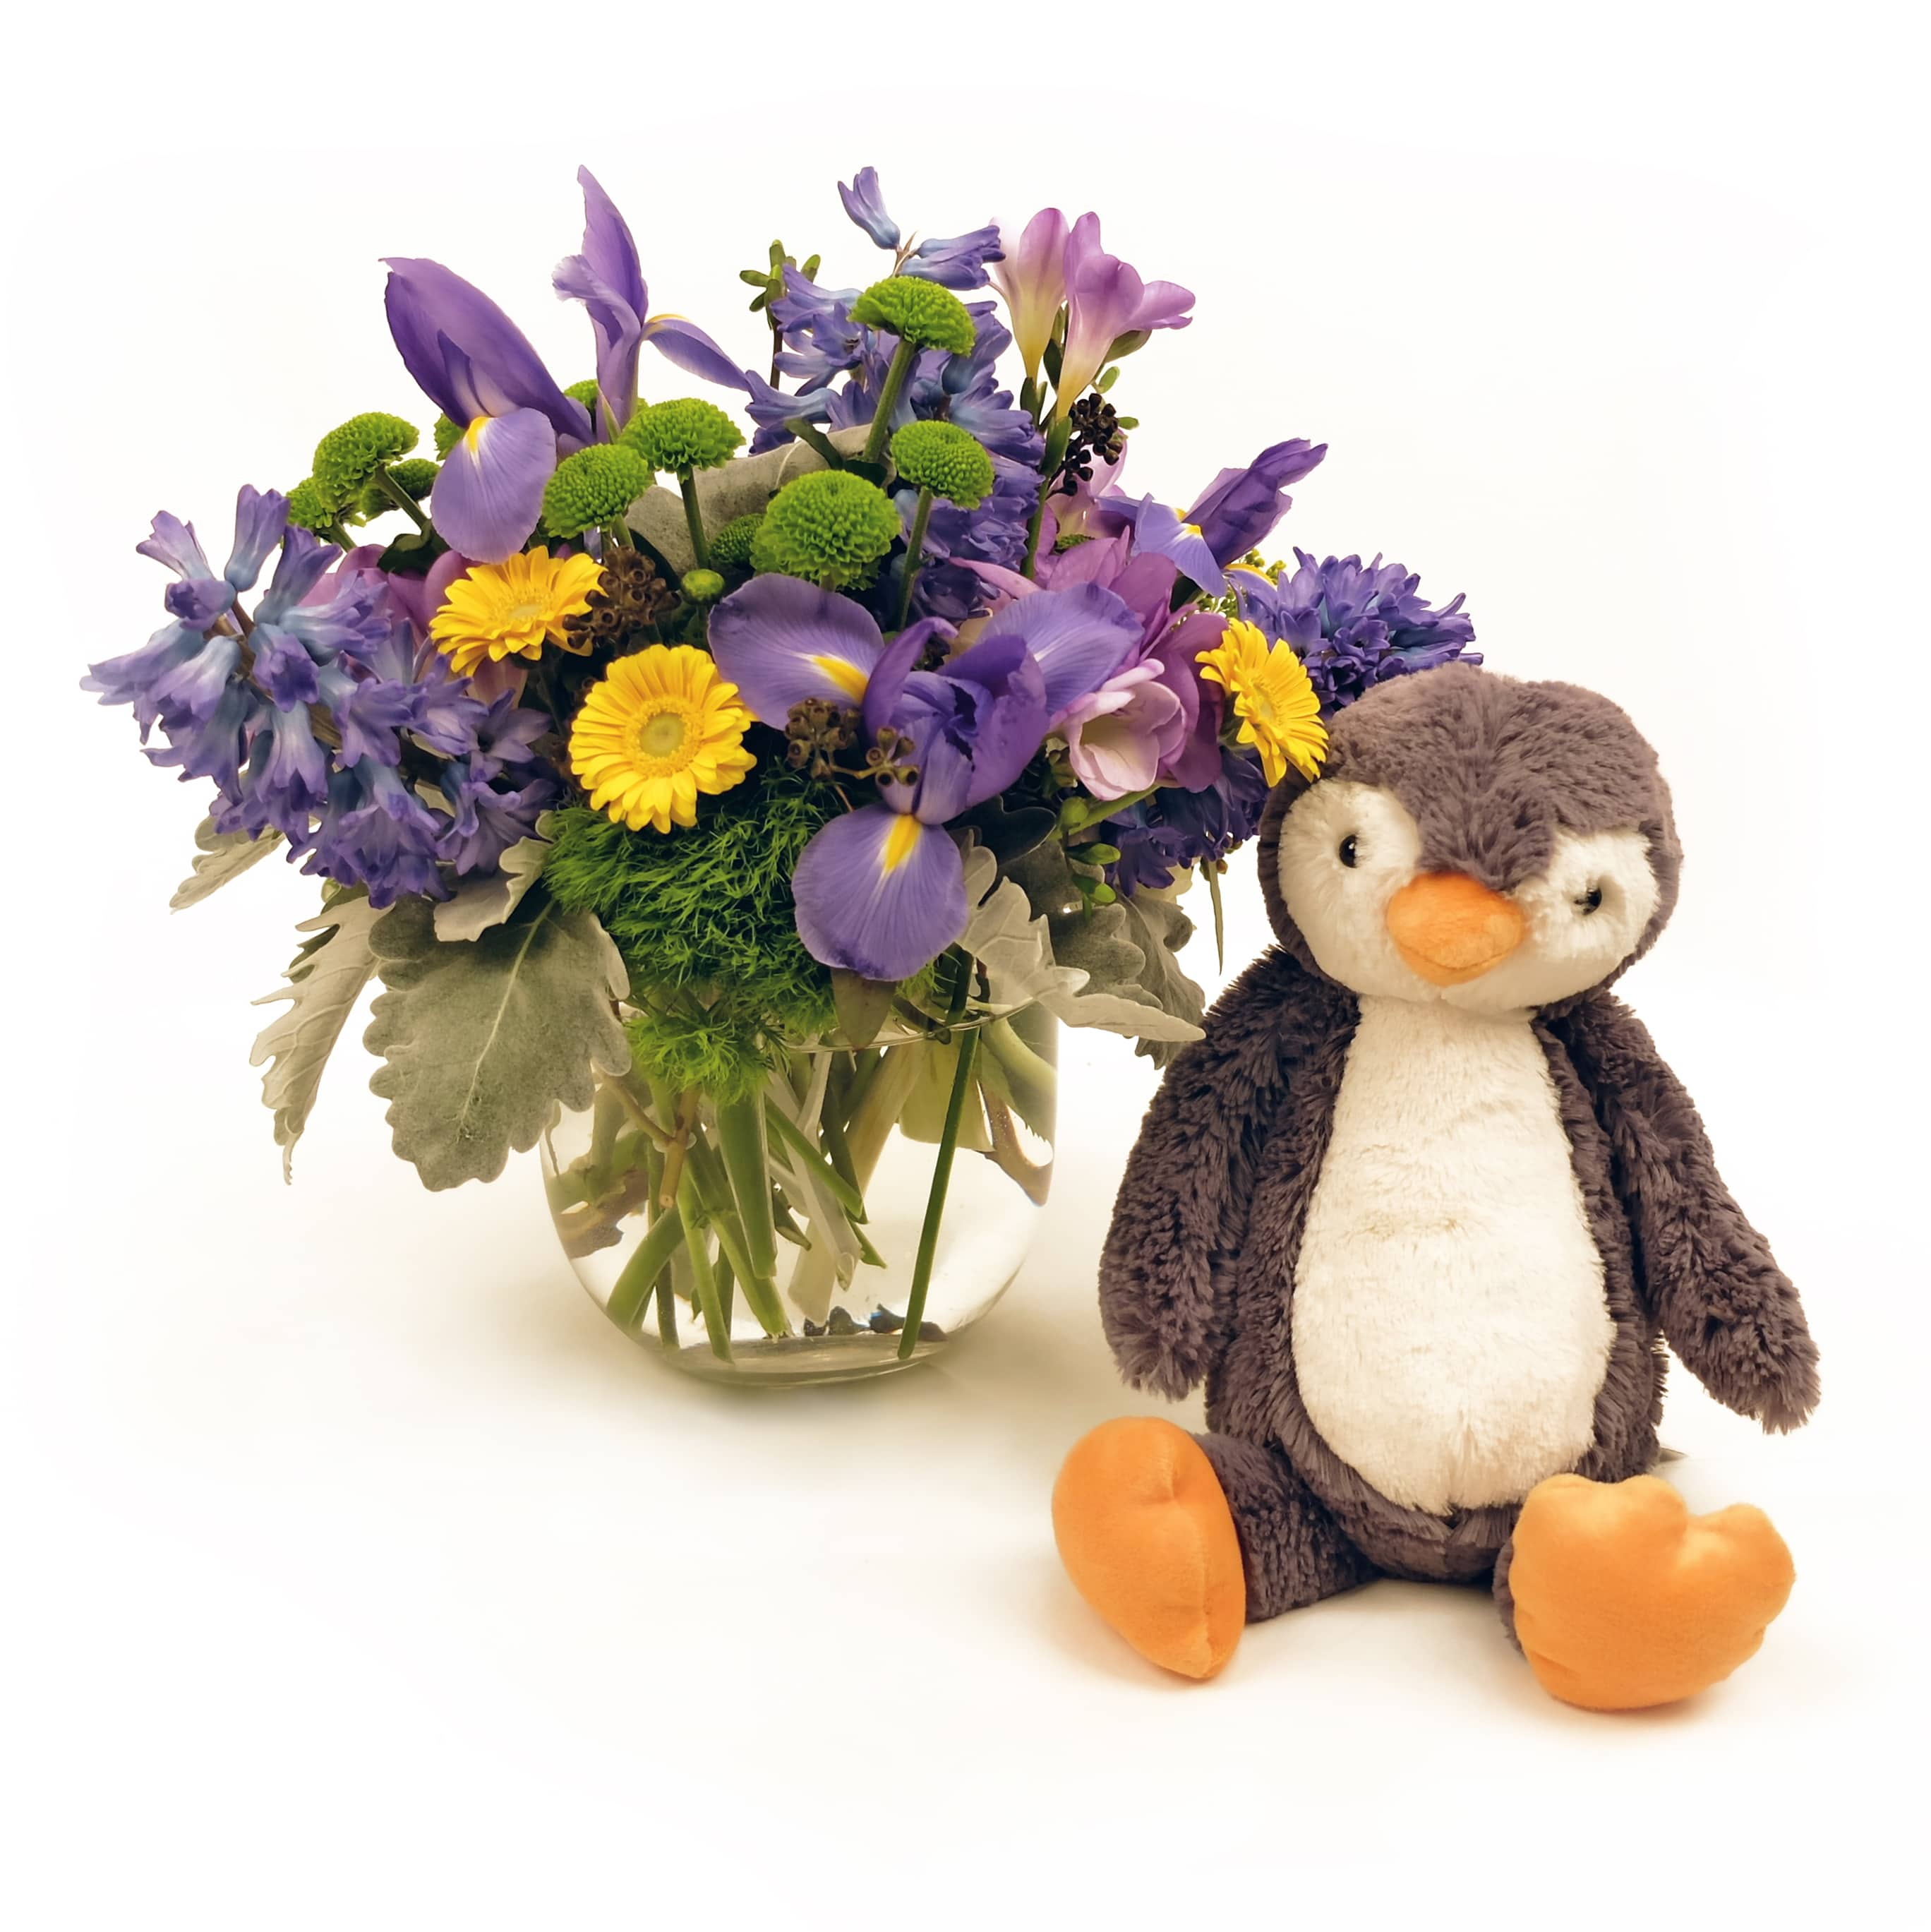 bouquet of flowers with a stuffed penguin doll